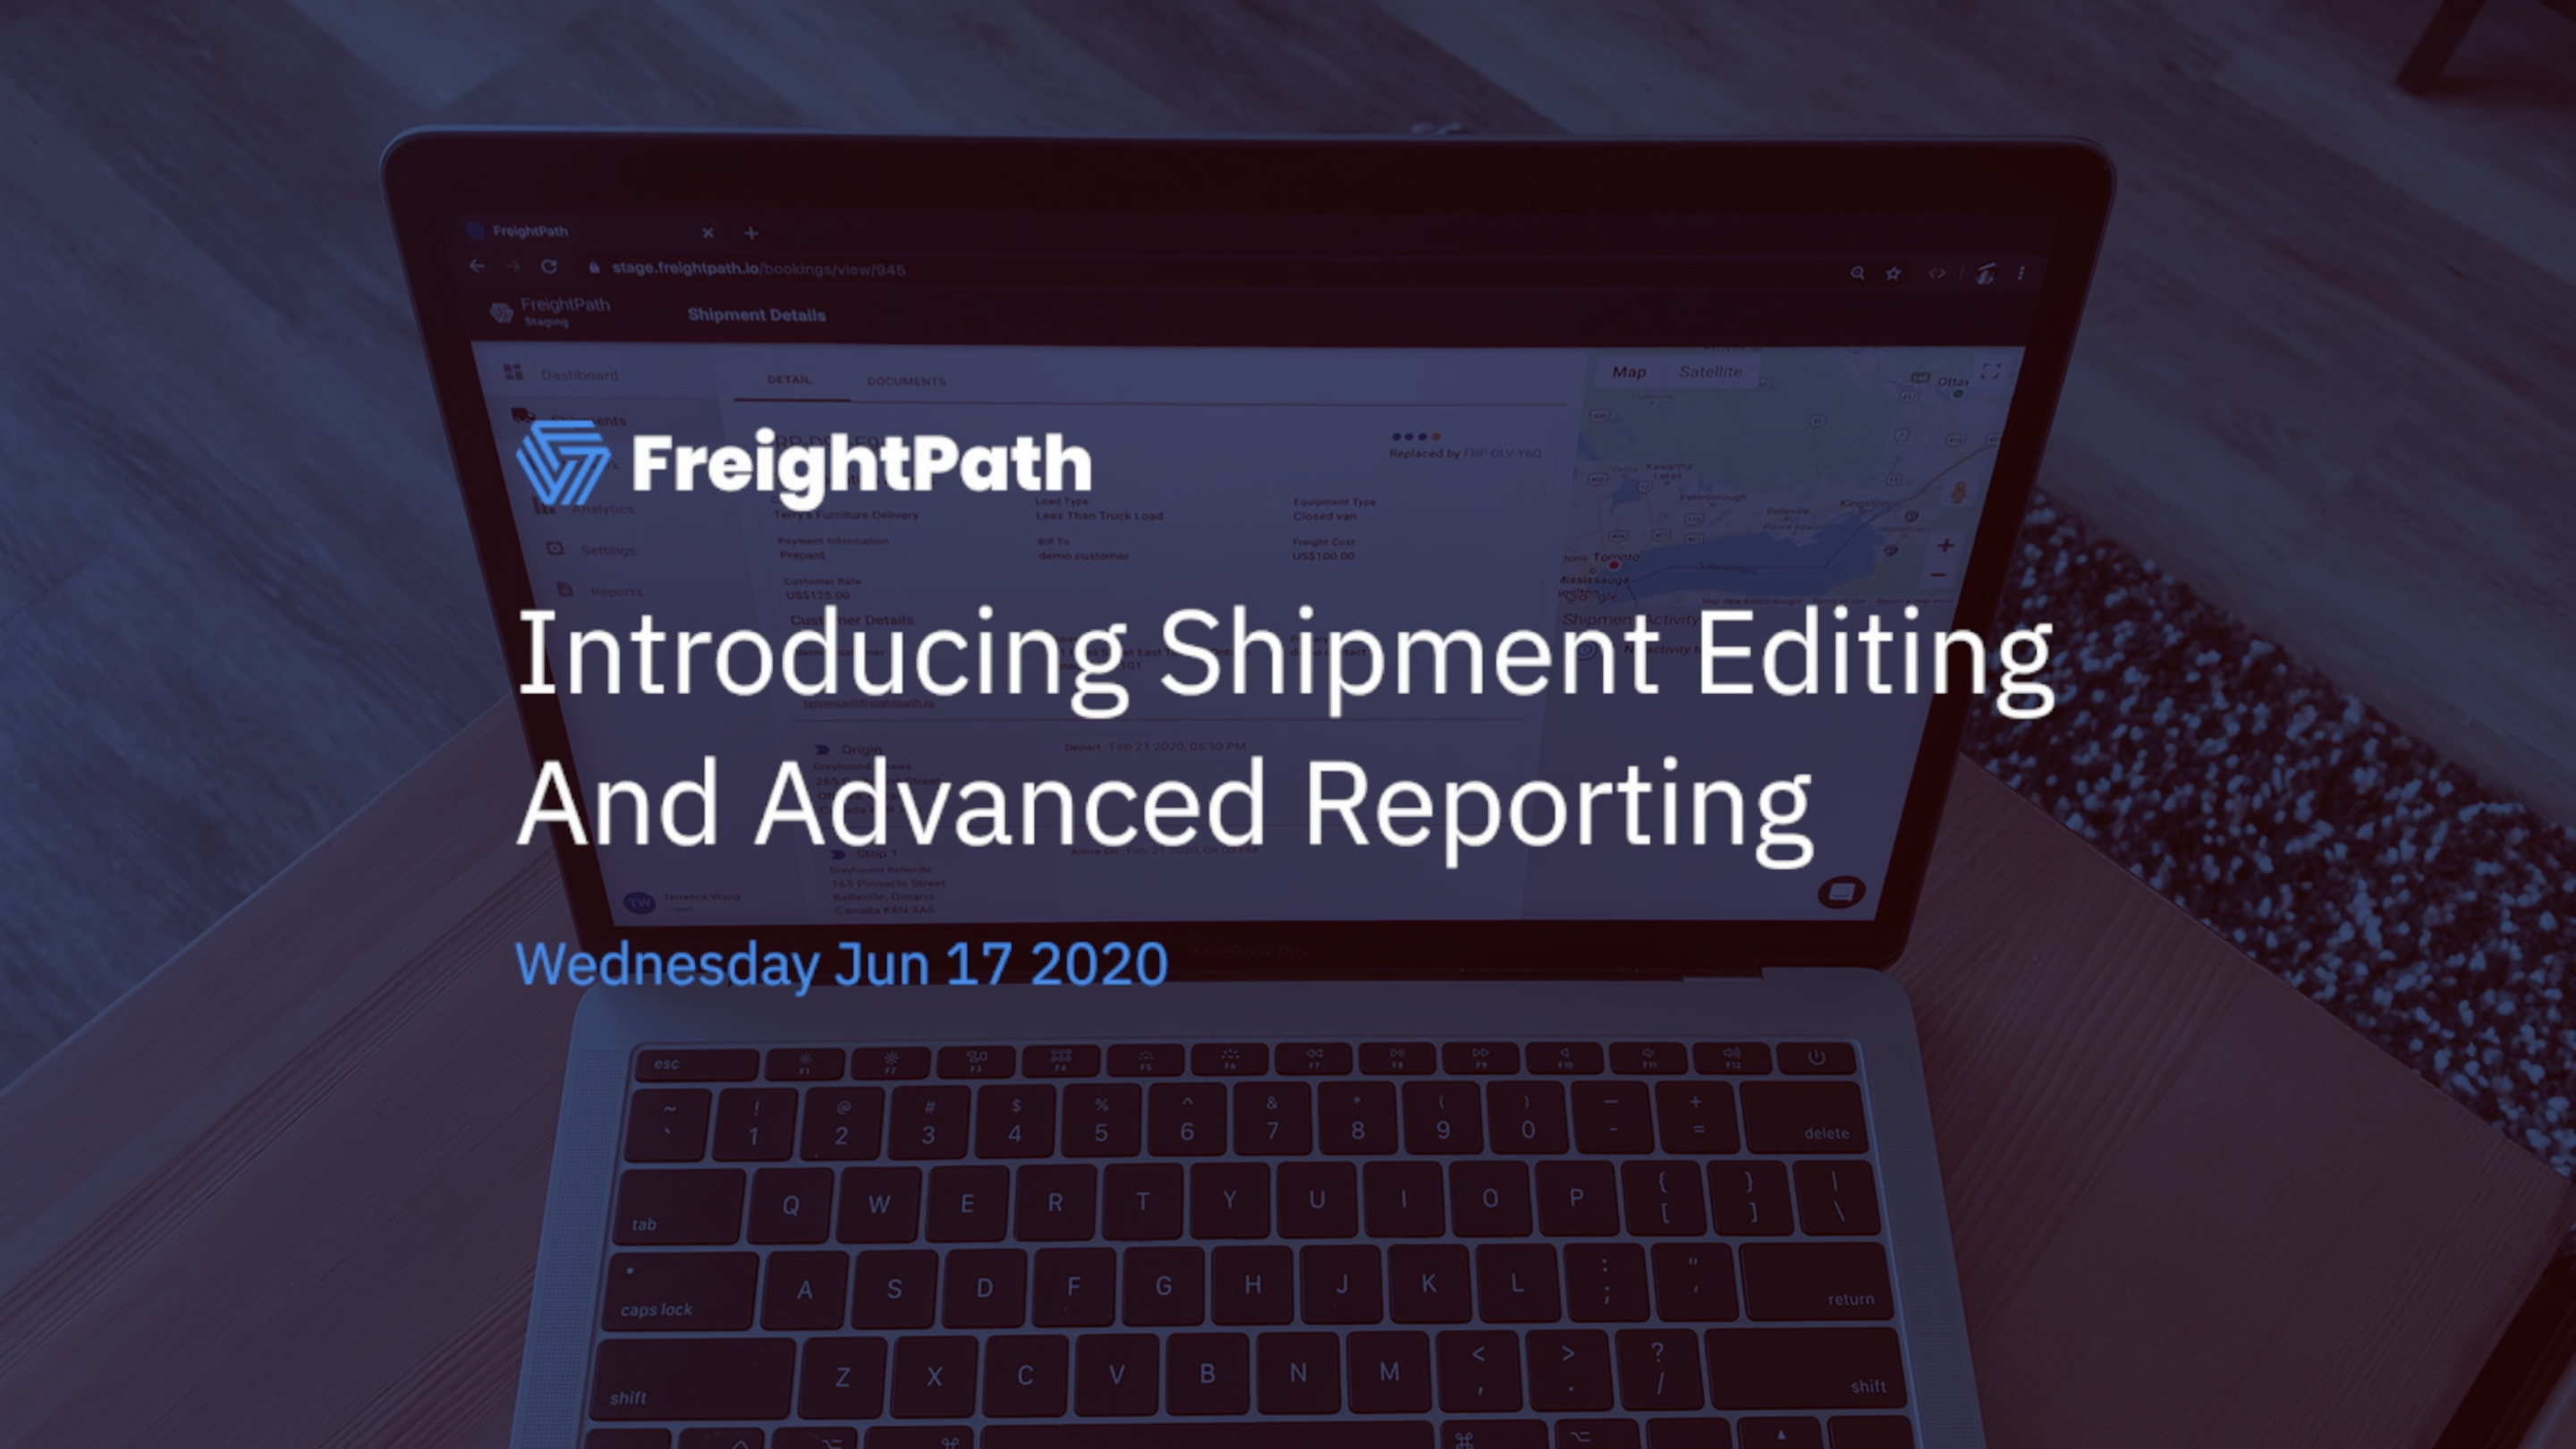 Introducing Shipment Editing and Advanced Reporting in FreightPath